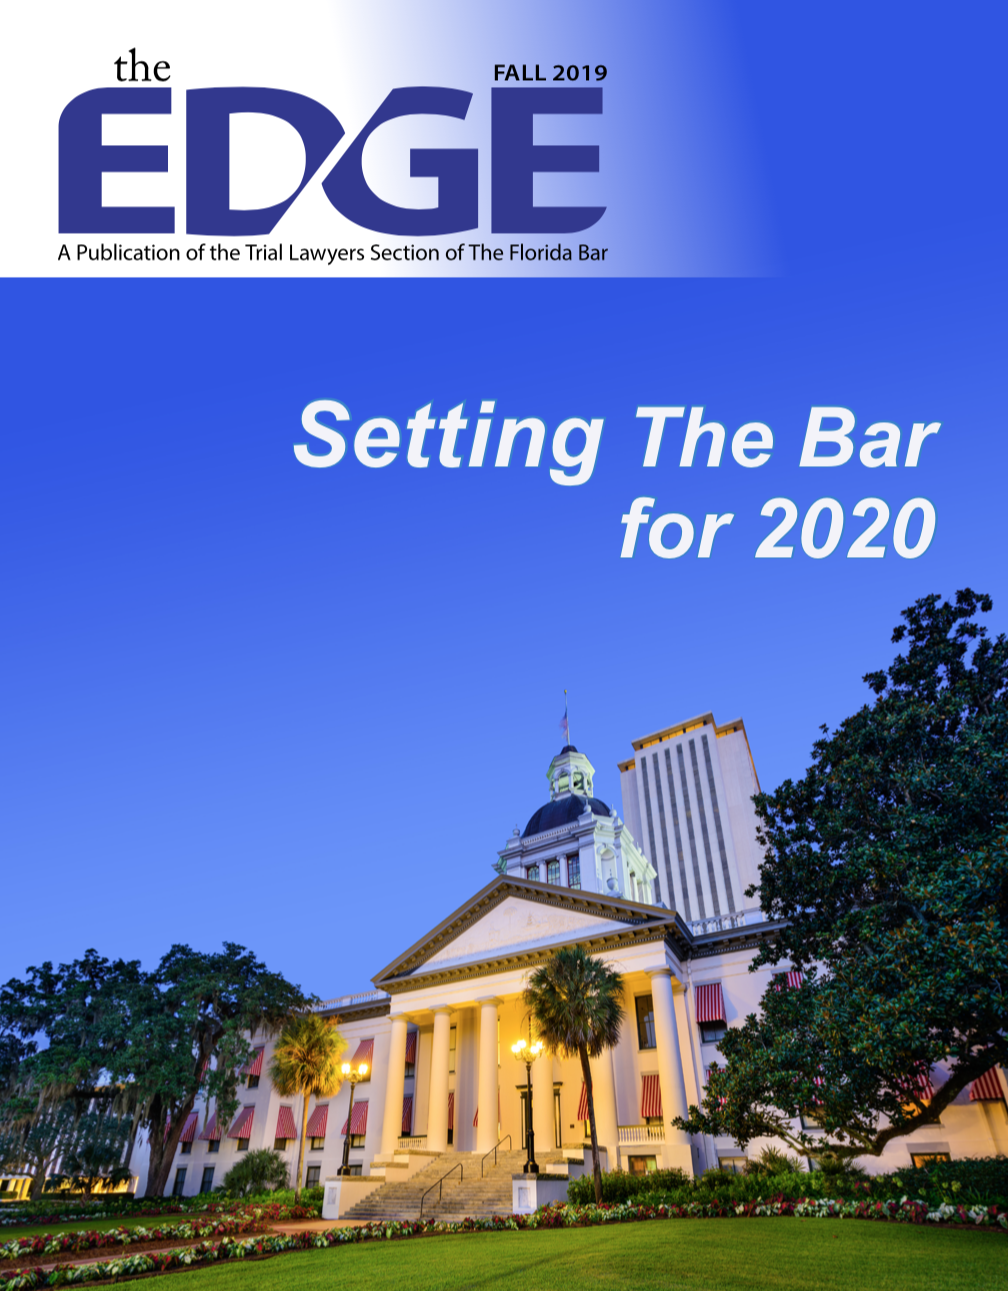 The Edge Magazine Cover Fall 2019, there is a white courthouse building with trees, green grass, red flowers and a blue sky in the background